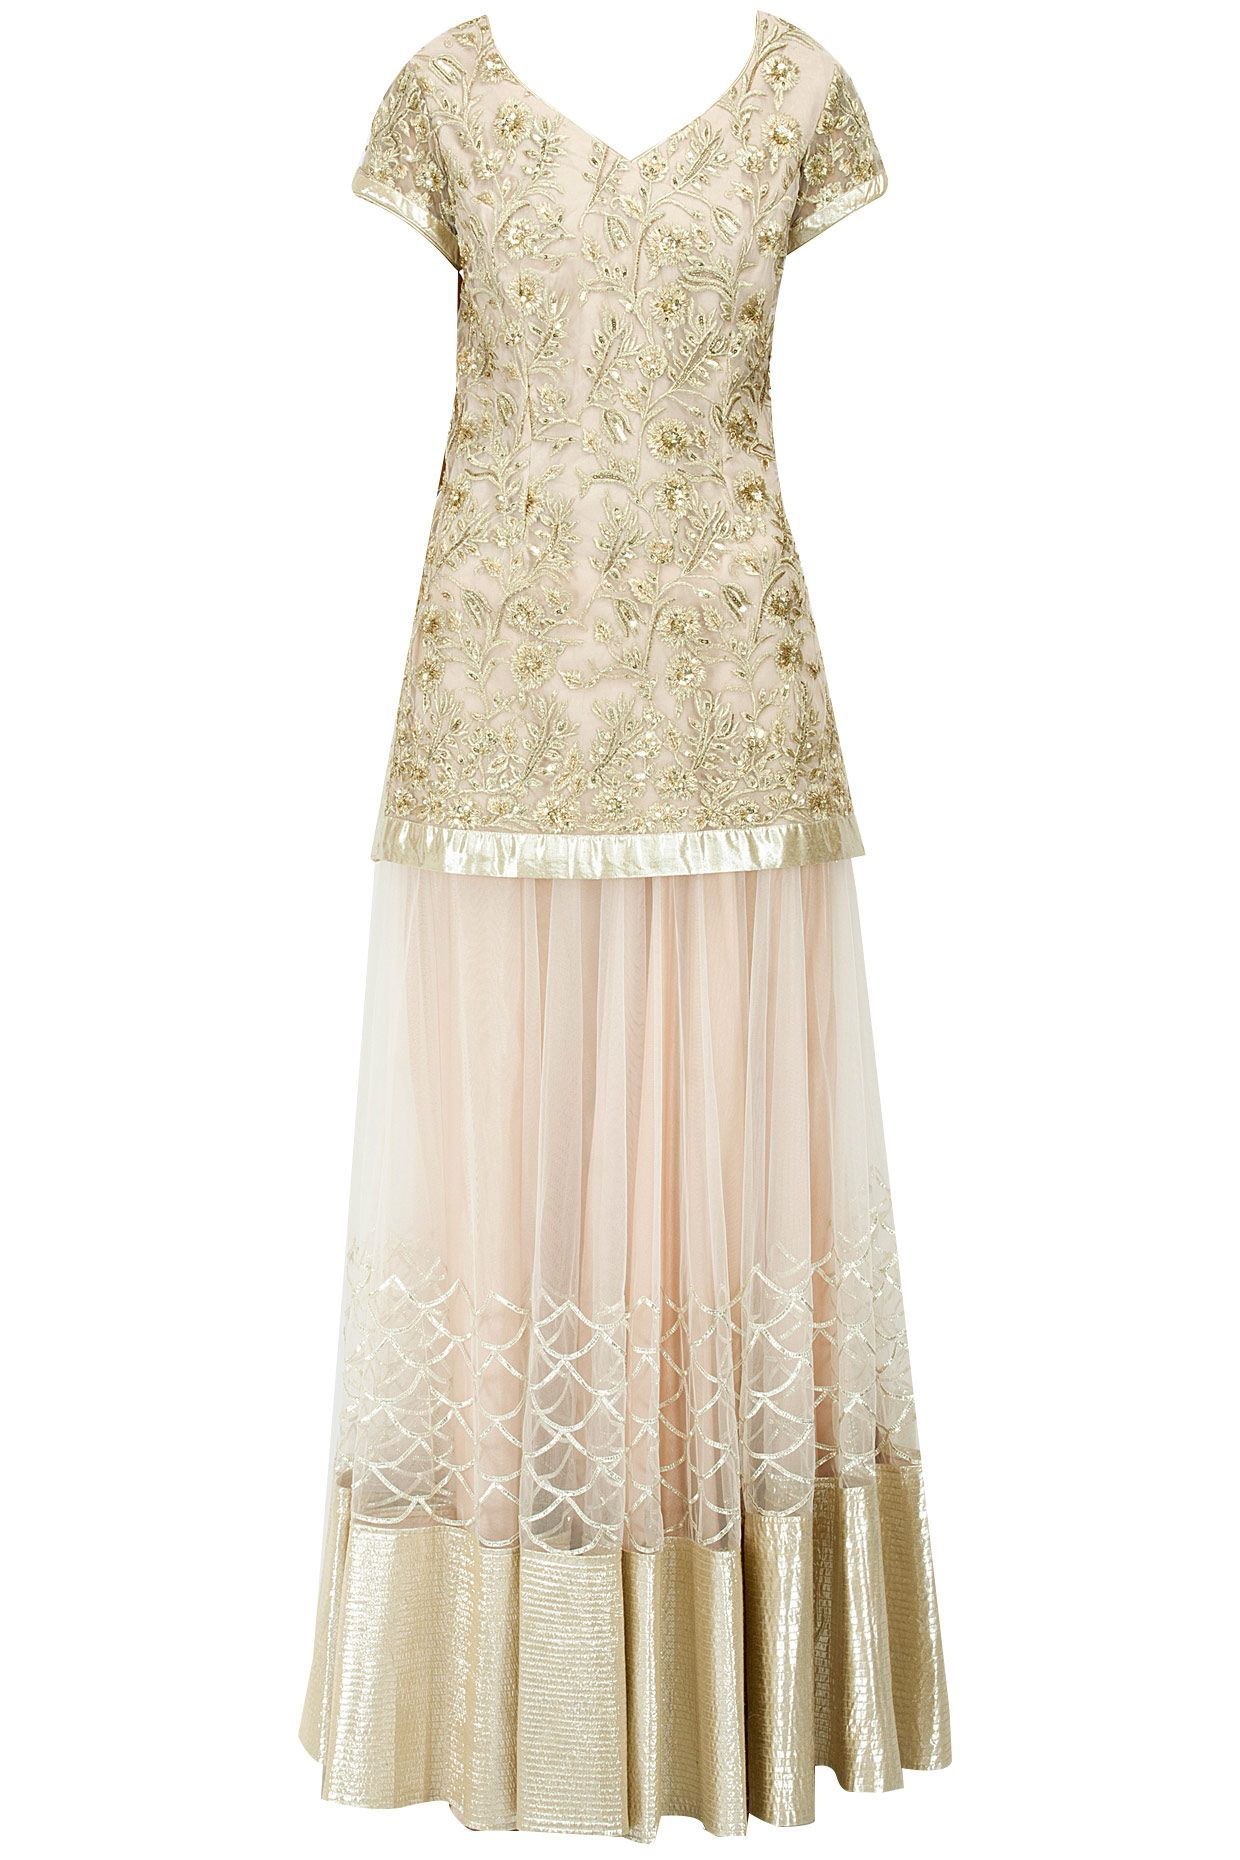 Raw silk wedding dress  Beige sequins applique detail lehenga set available only at Perniaus